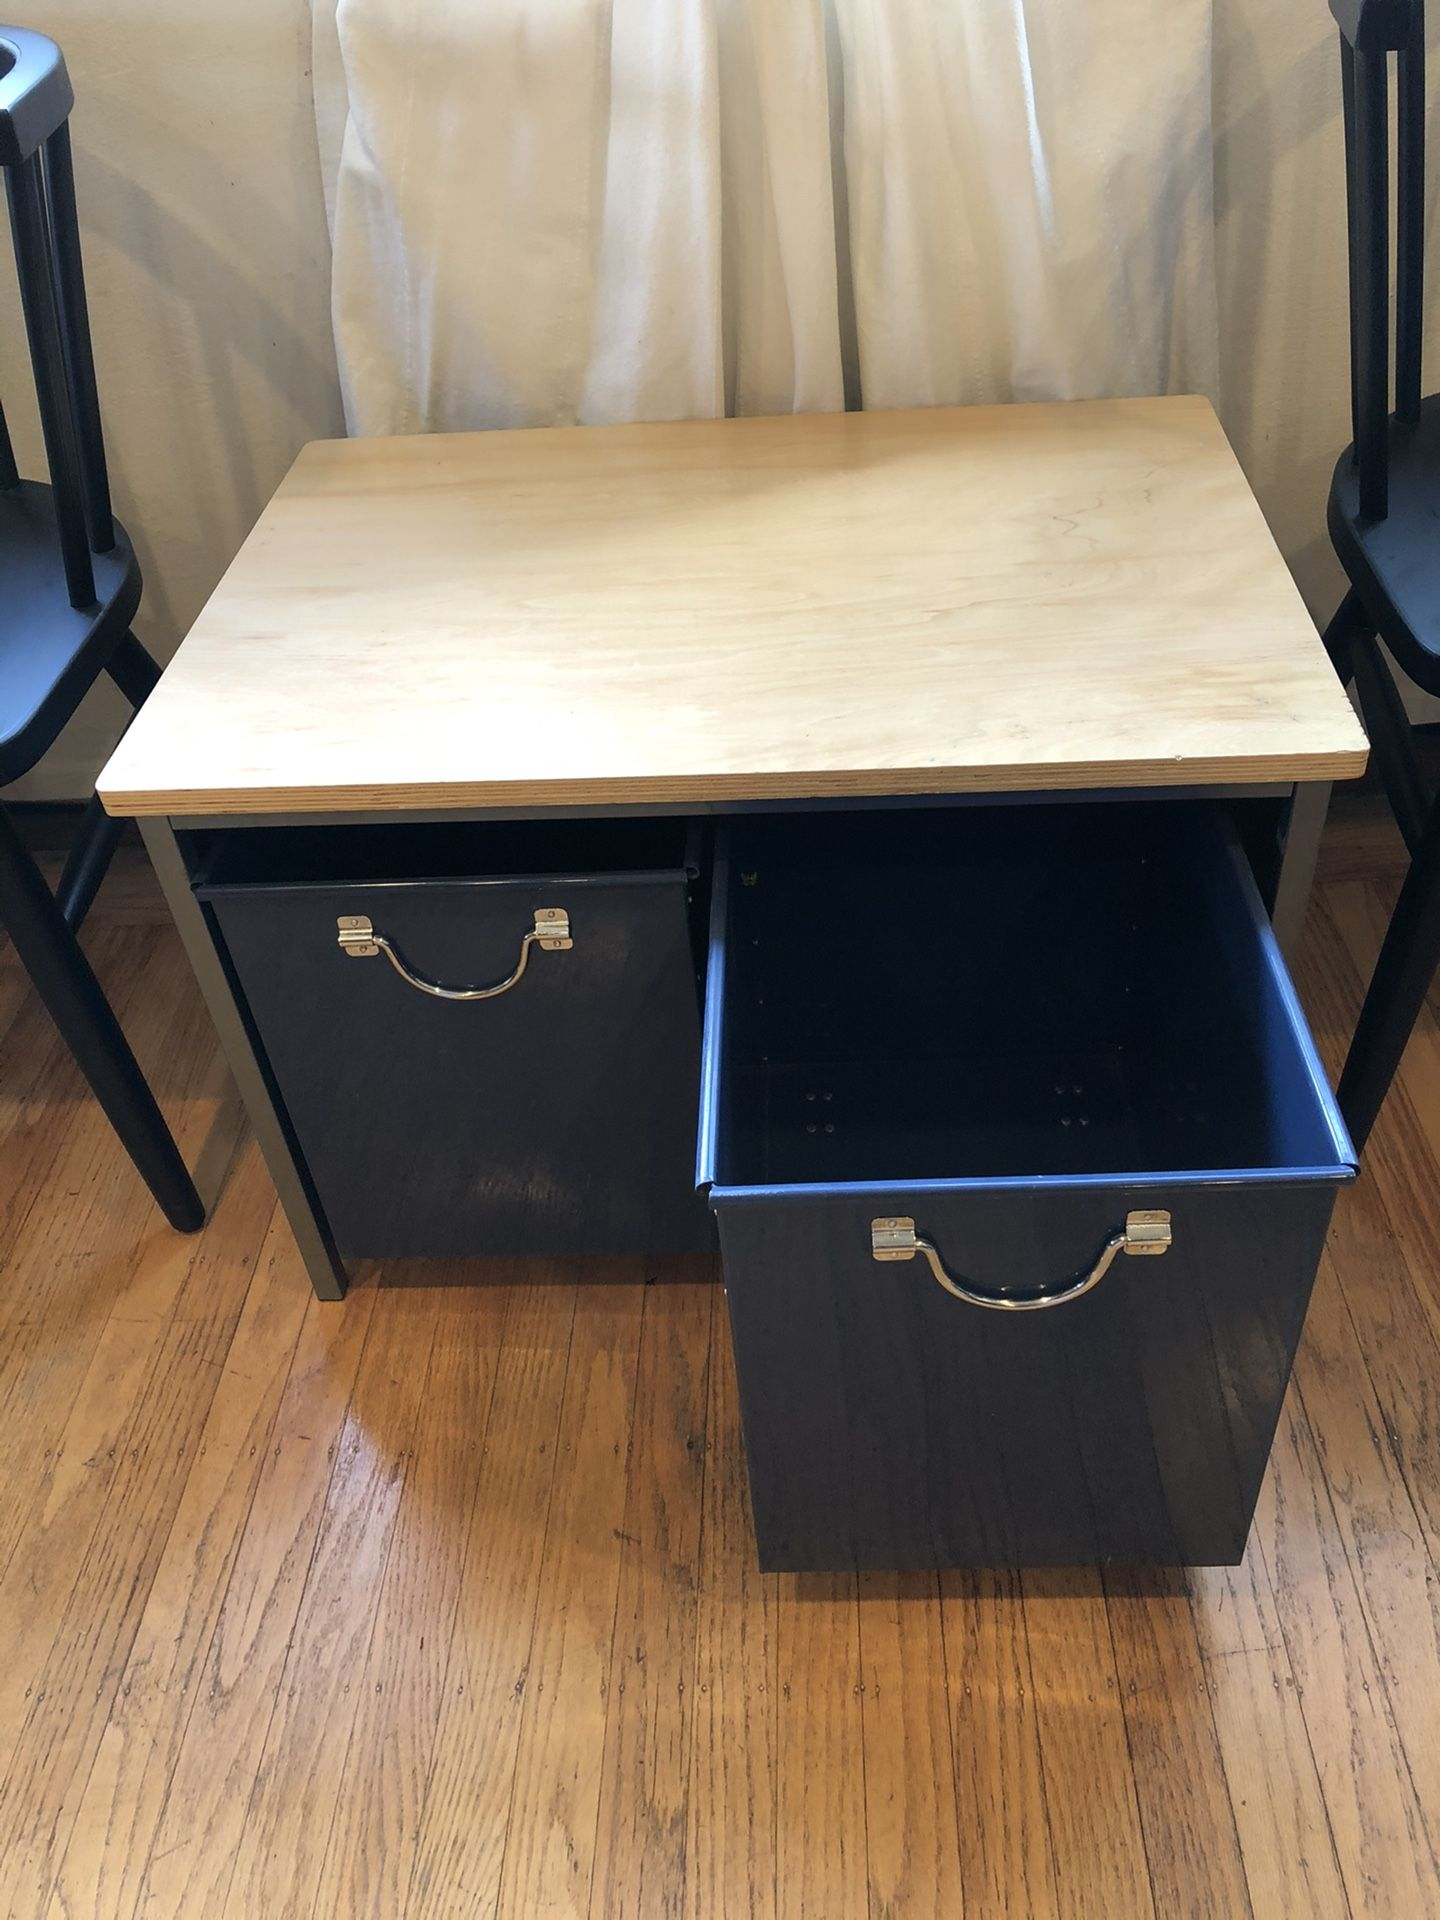 PBTeen inspired small table with 2 rolling storage bins